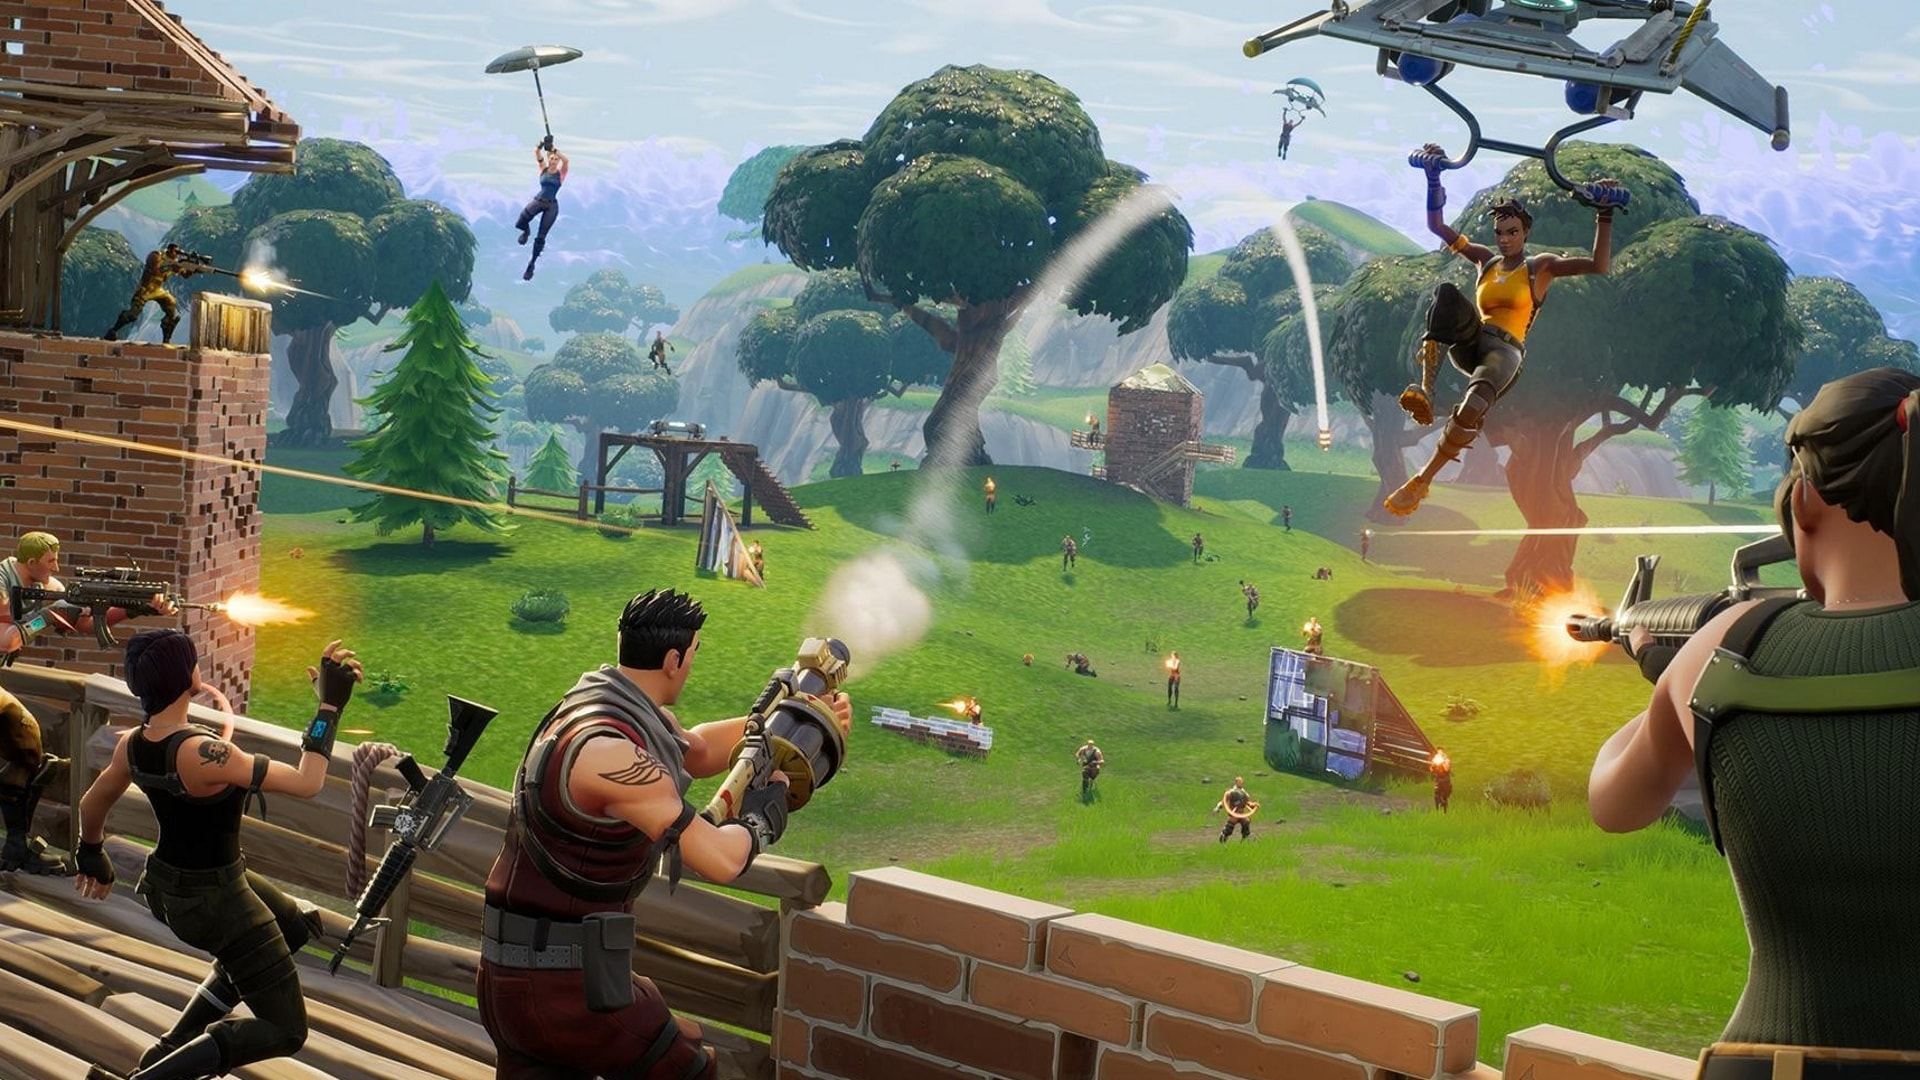 Fortnite-Port-A-Fort-guide-Tips-tricks-and-strategy-advice